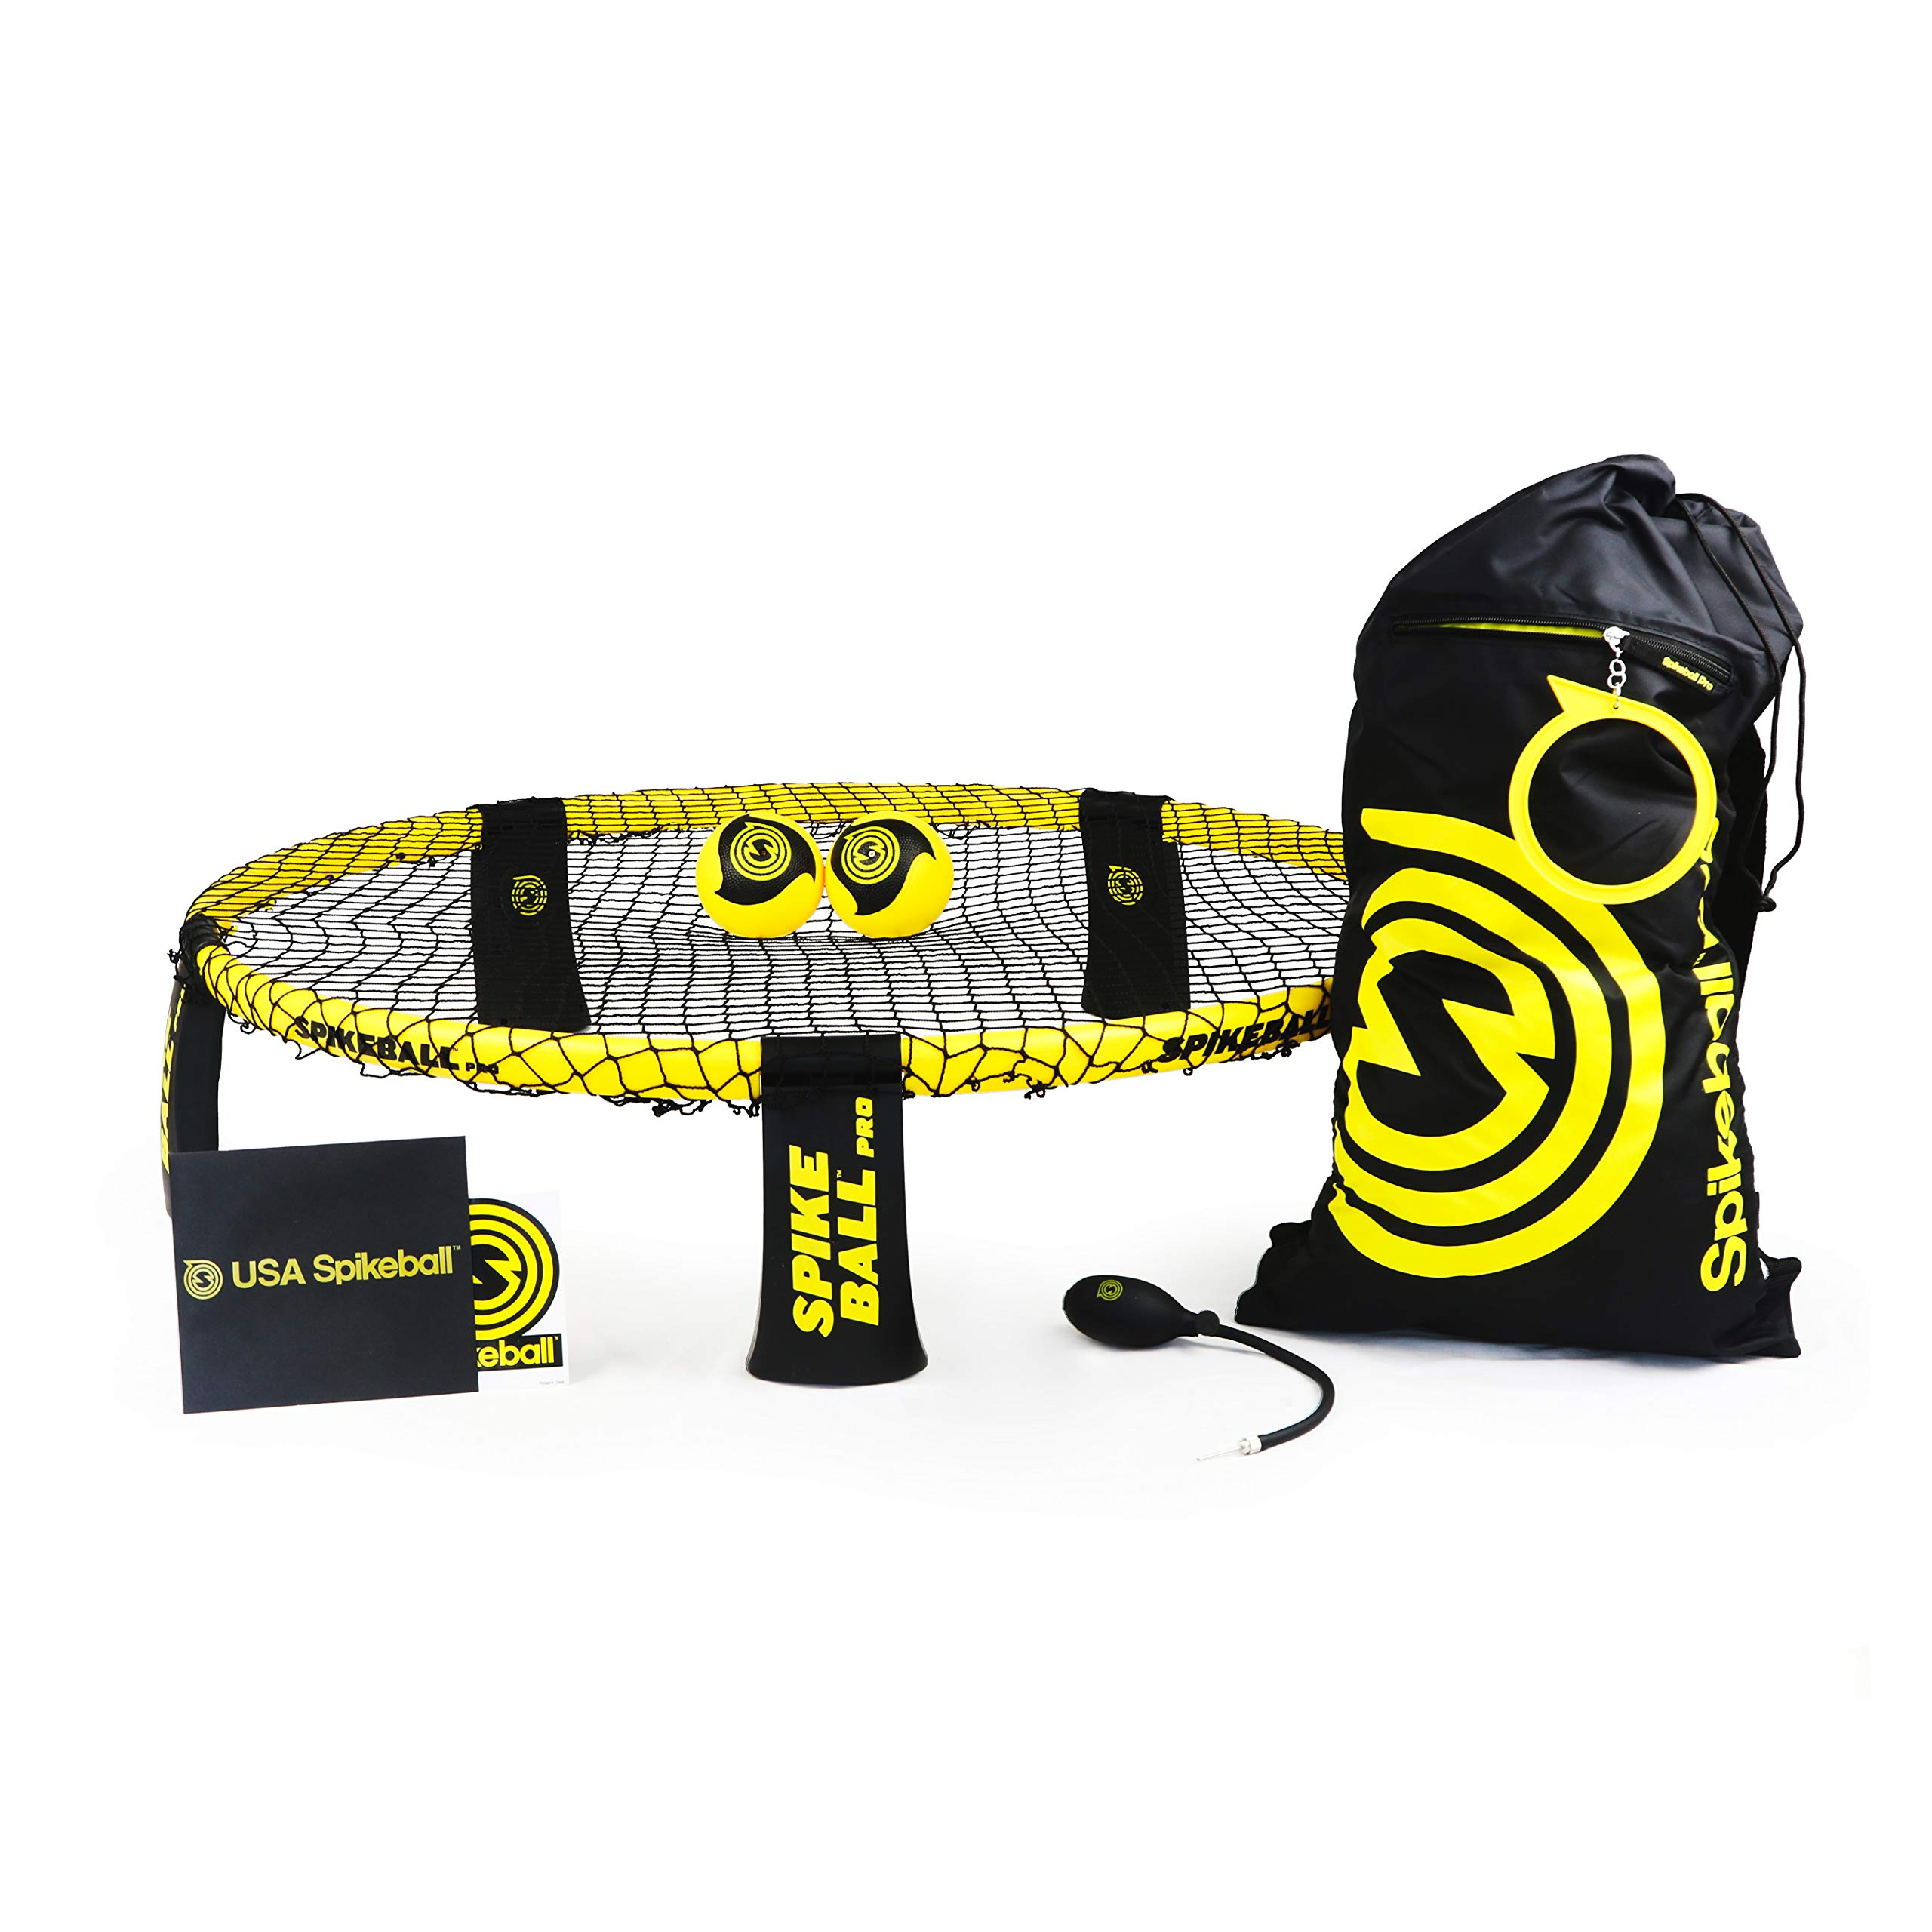 Spikeball Pro Kit (Tournament Edition) - Includes Upgraded Stronger Playing Net, New Balls Designed to Add Spin, Portable Ball Pump Gauge, Backpack - As Seen on Shark Tank TV by Spikeball